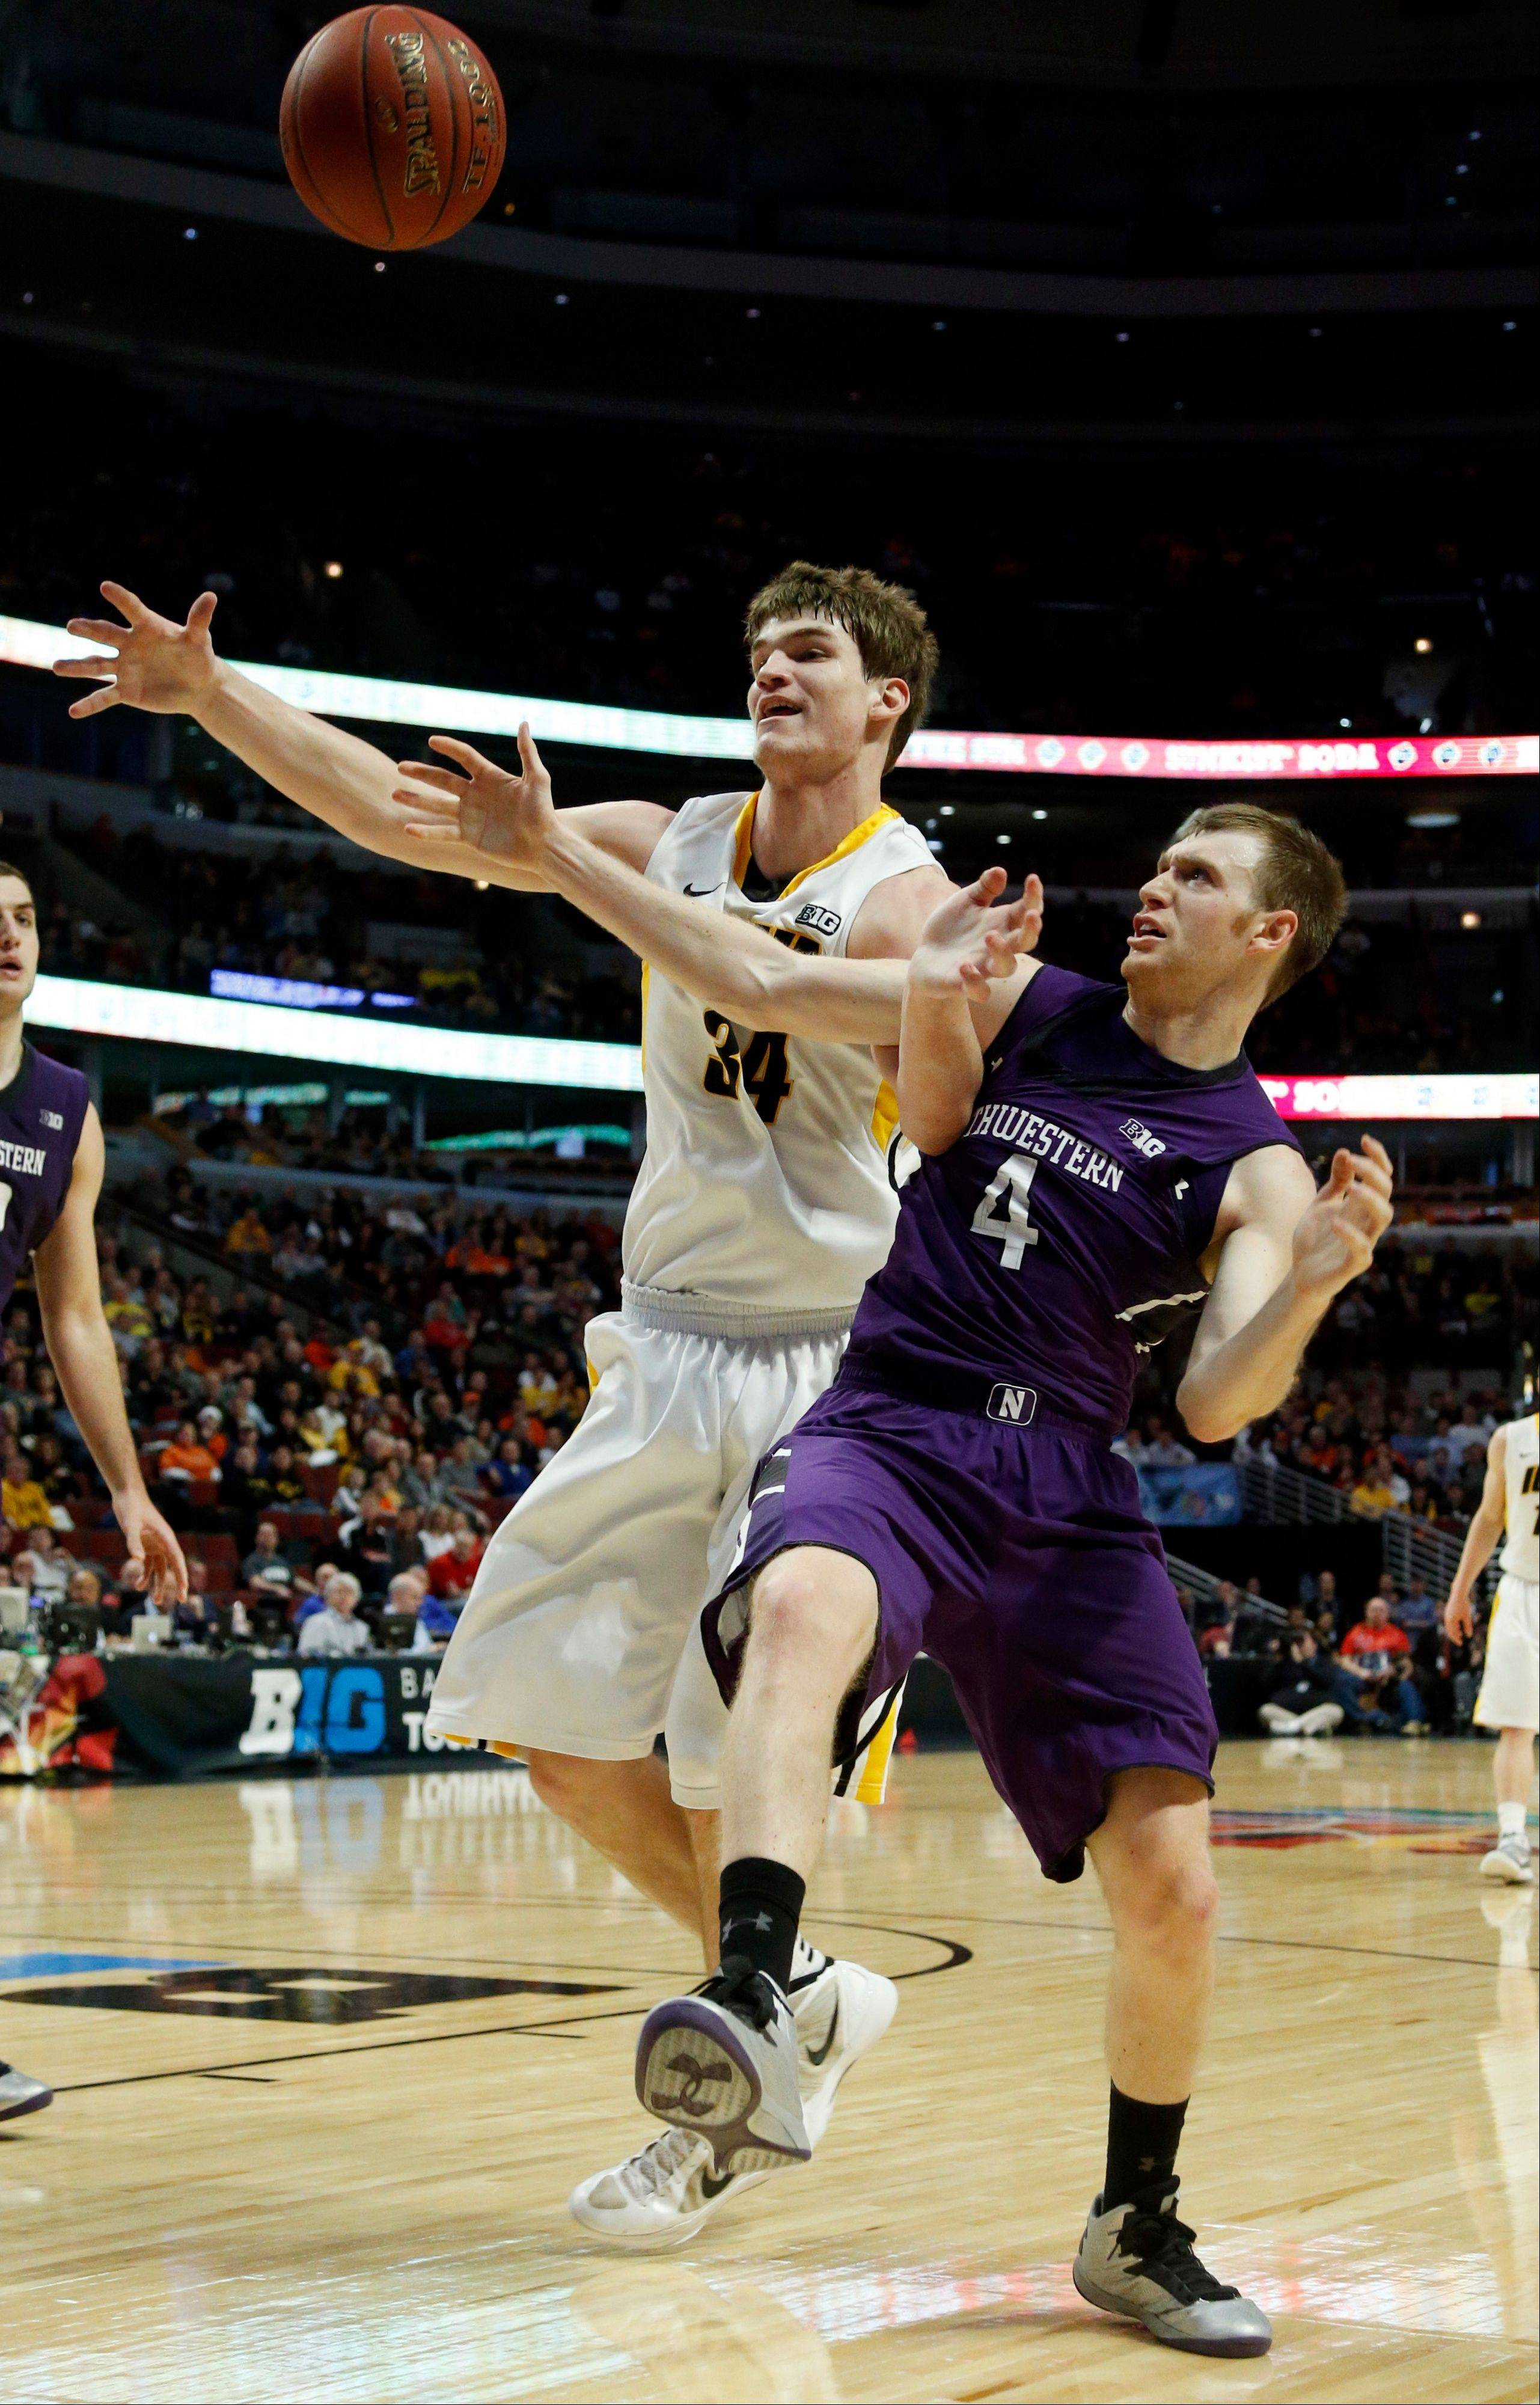 Iowa's Adam Woodbury (34) and Northwestern's Alex Marcotullio (4) battle for a loose ball during the first half of an NCAA college basketball game at the Big Ten tournament Thursday, March 14, 2013, in Chicago. (AP Photo/Charles Rex Arbogast)